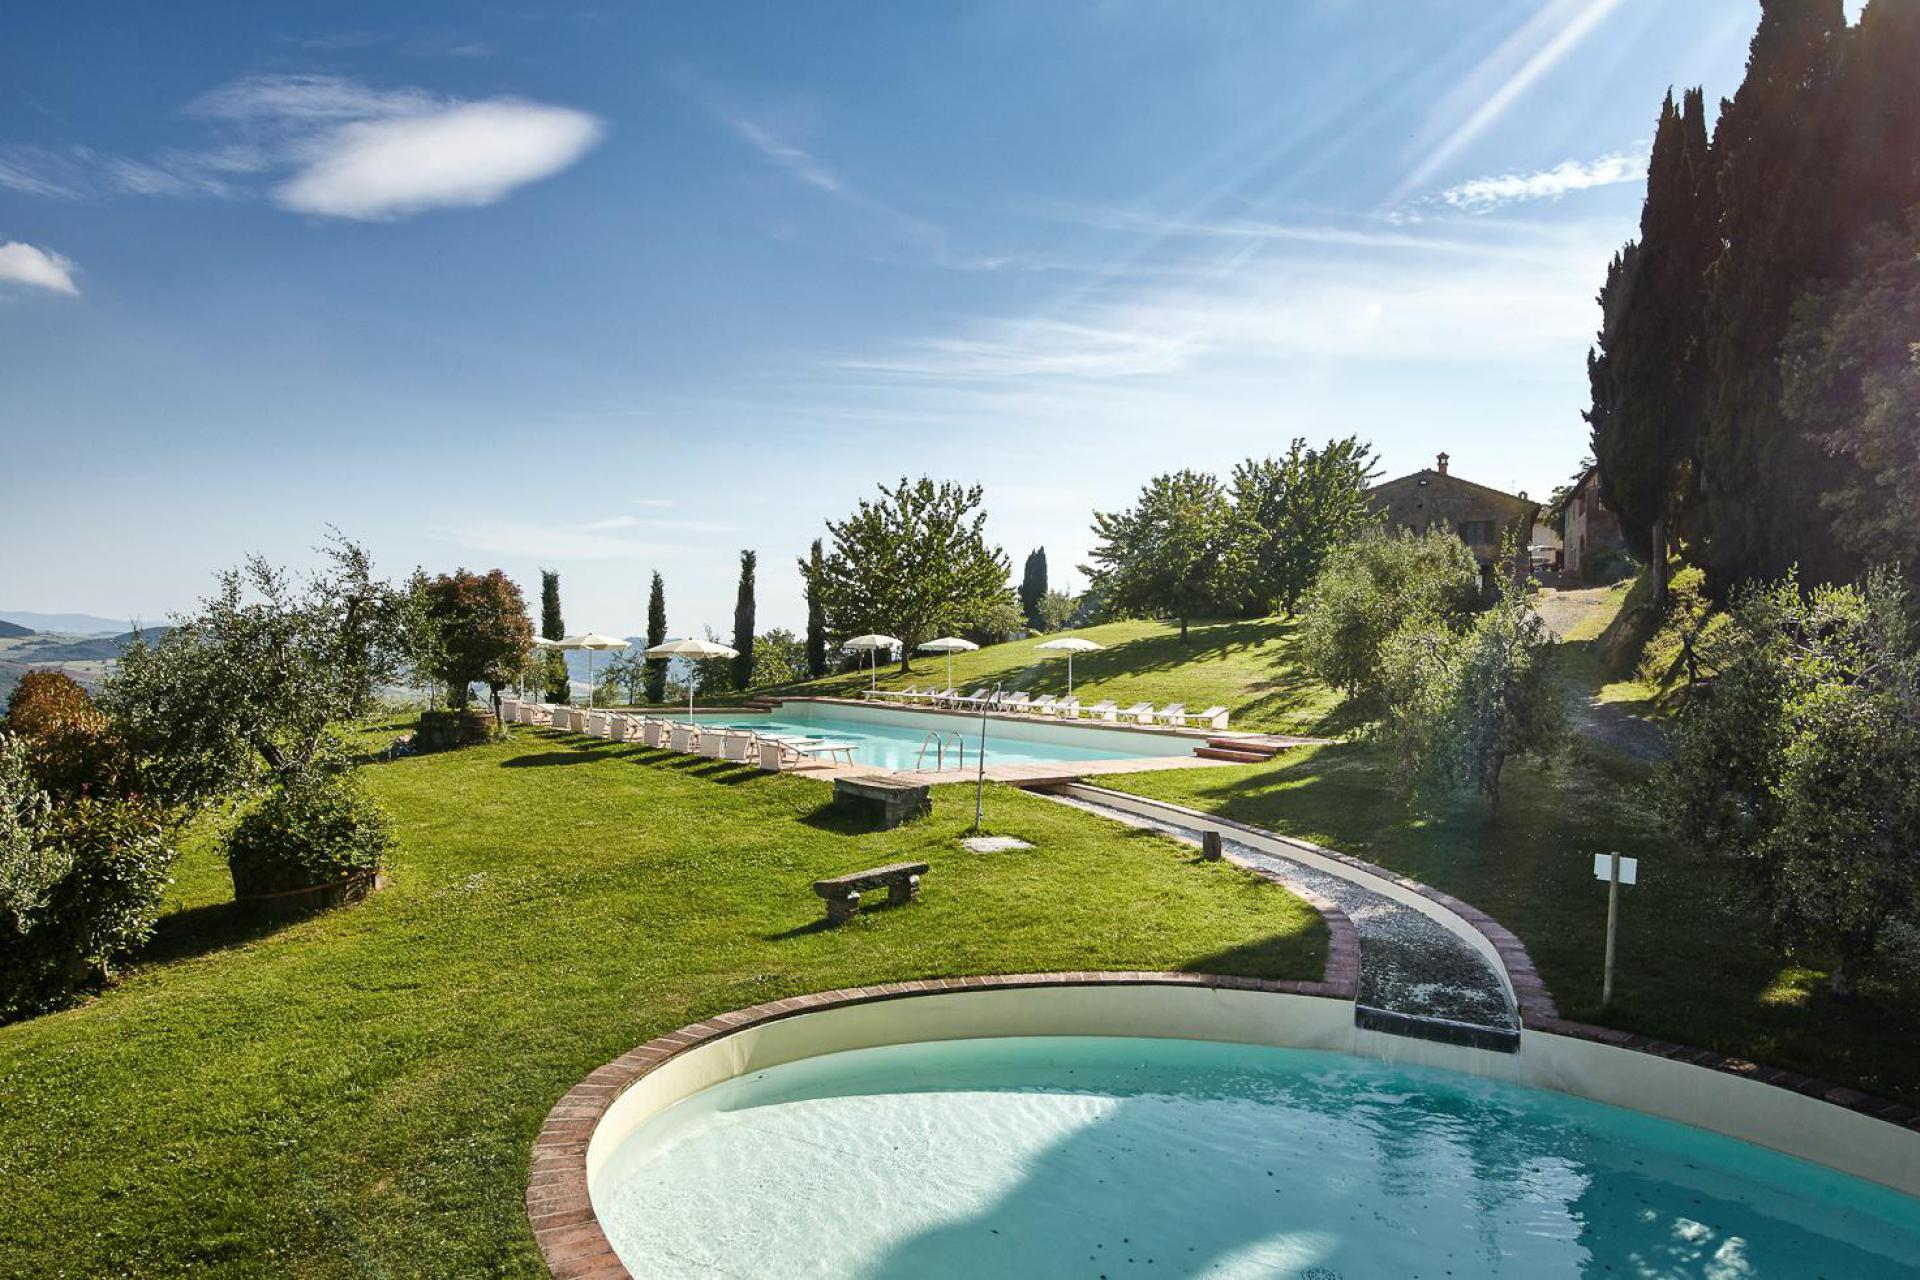 Agriturismo with pool and children's pool